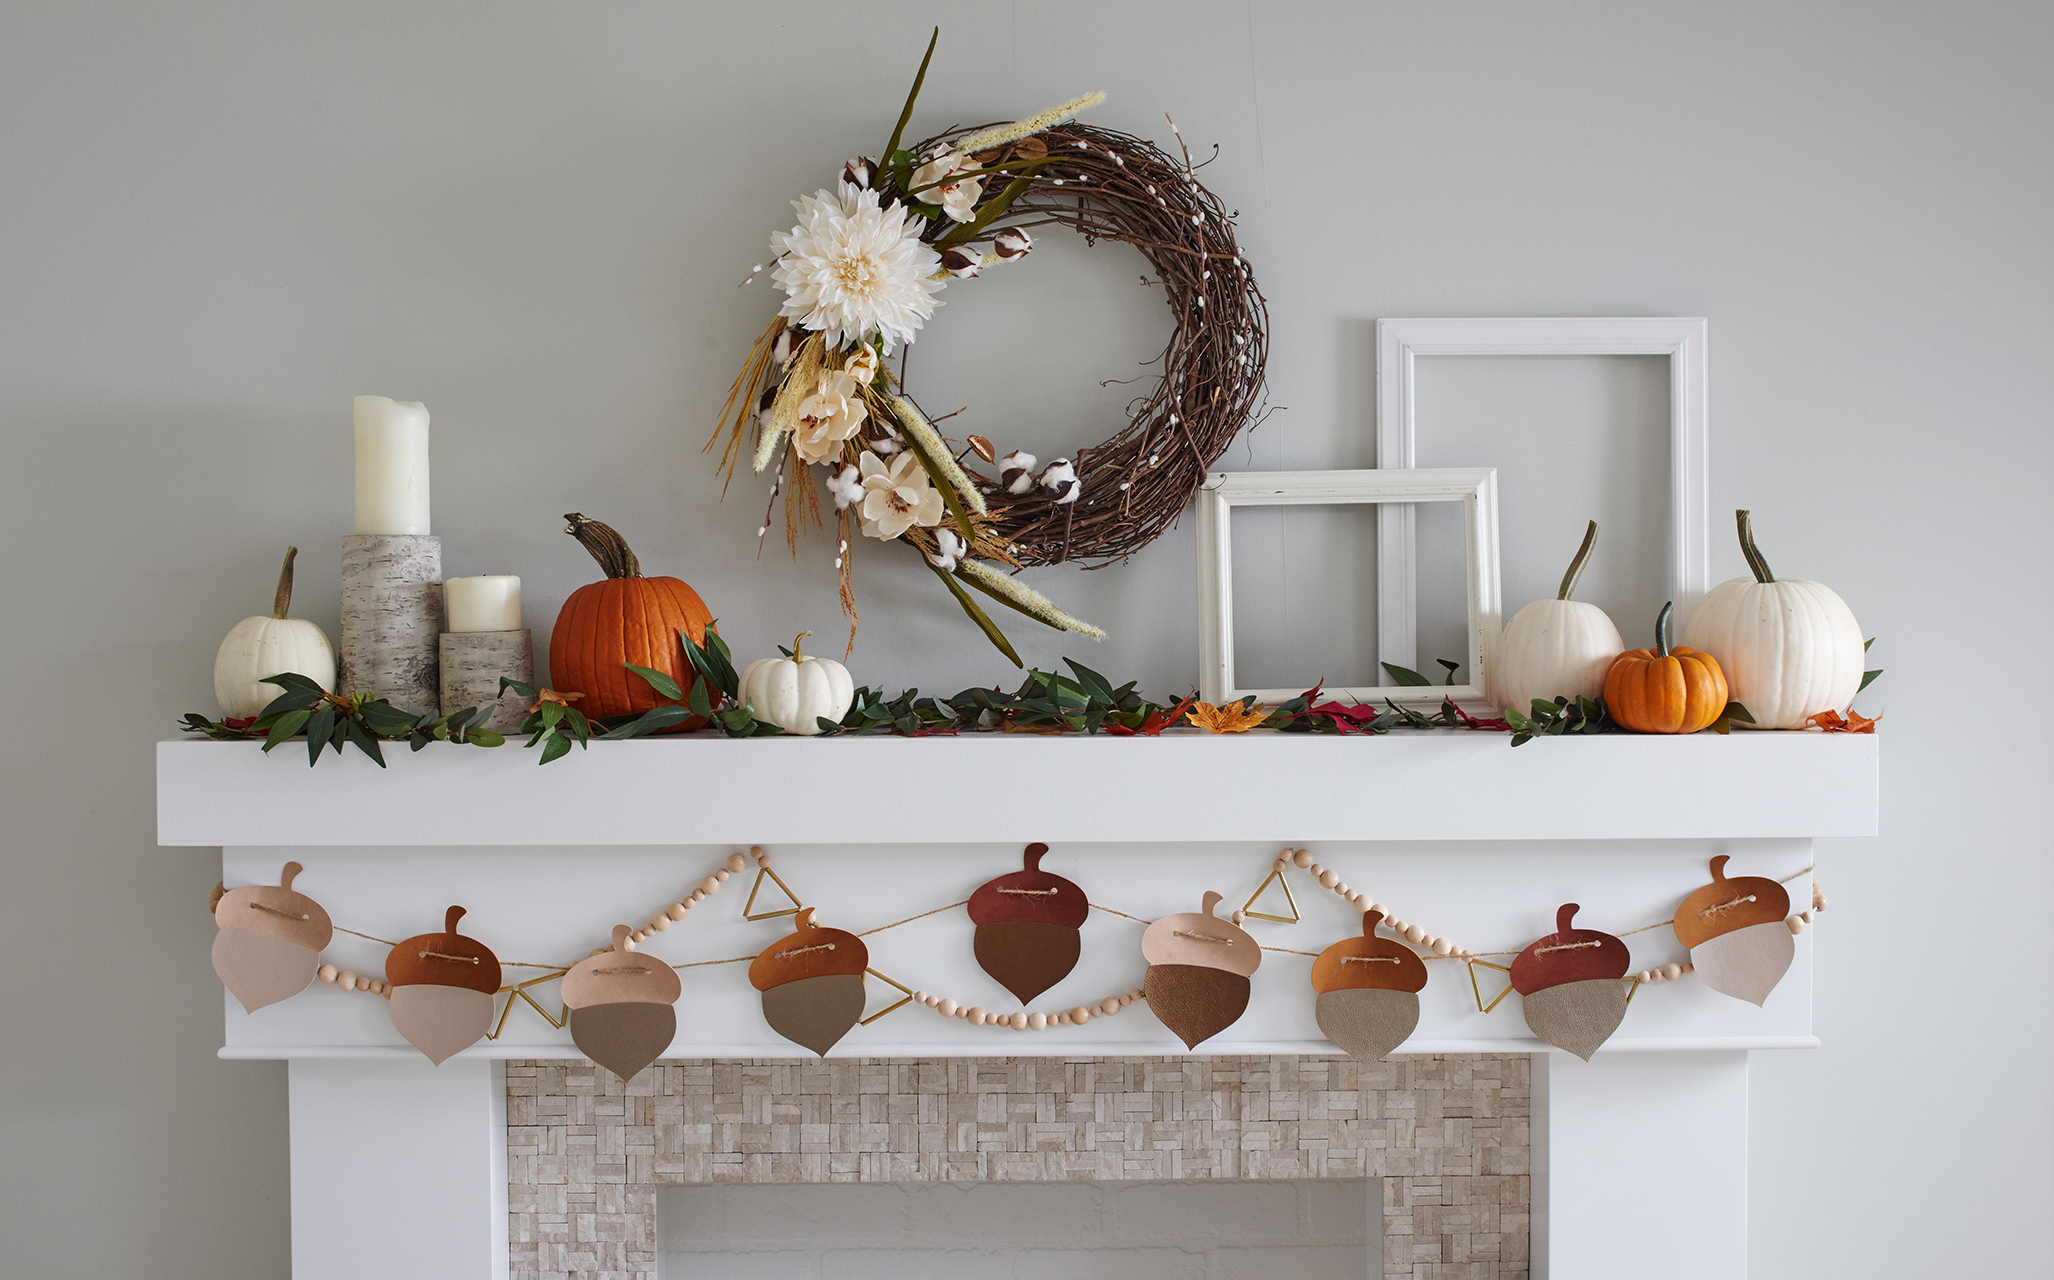 home fireplace mantel fall pumpkin acorn decor